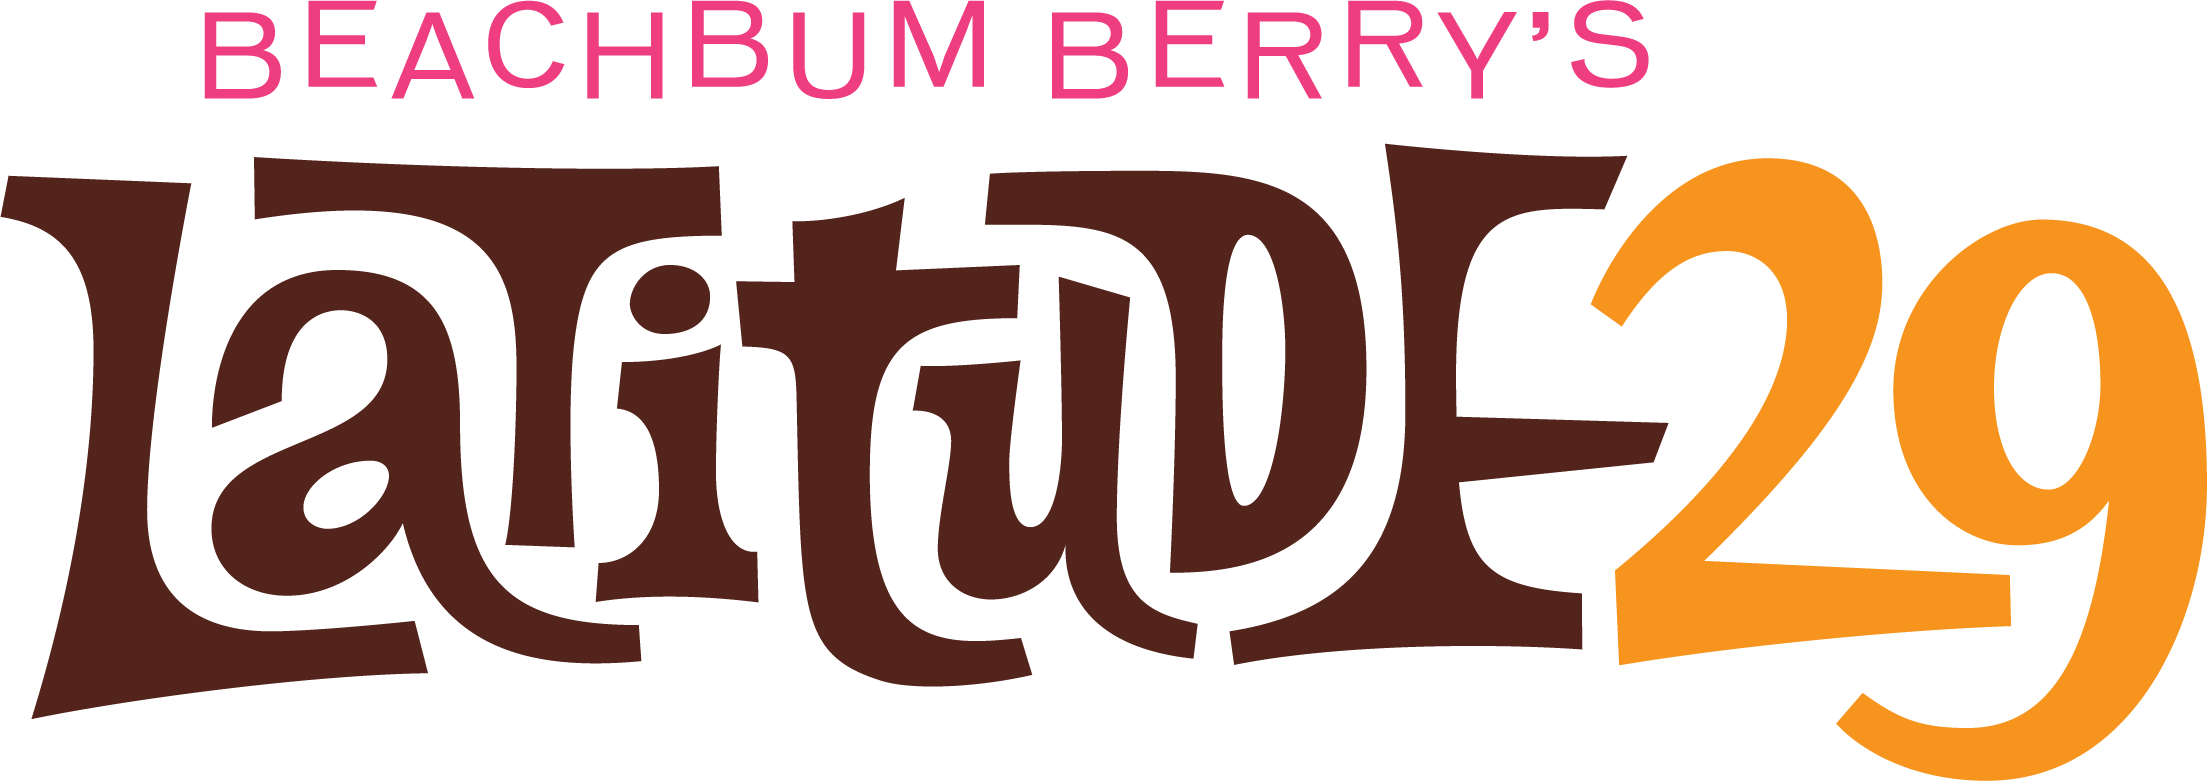 Beachbum Berrys Latitude 29 Serving Exotic Drinks Chow